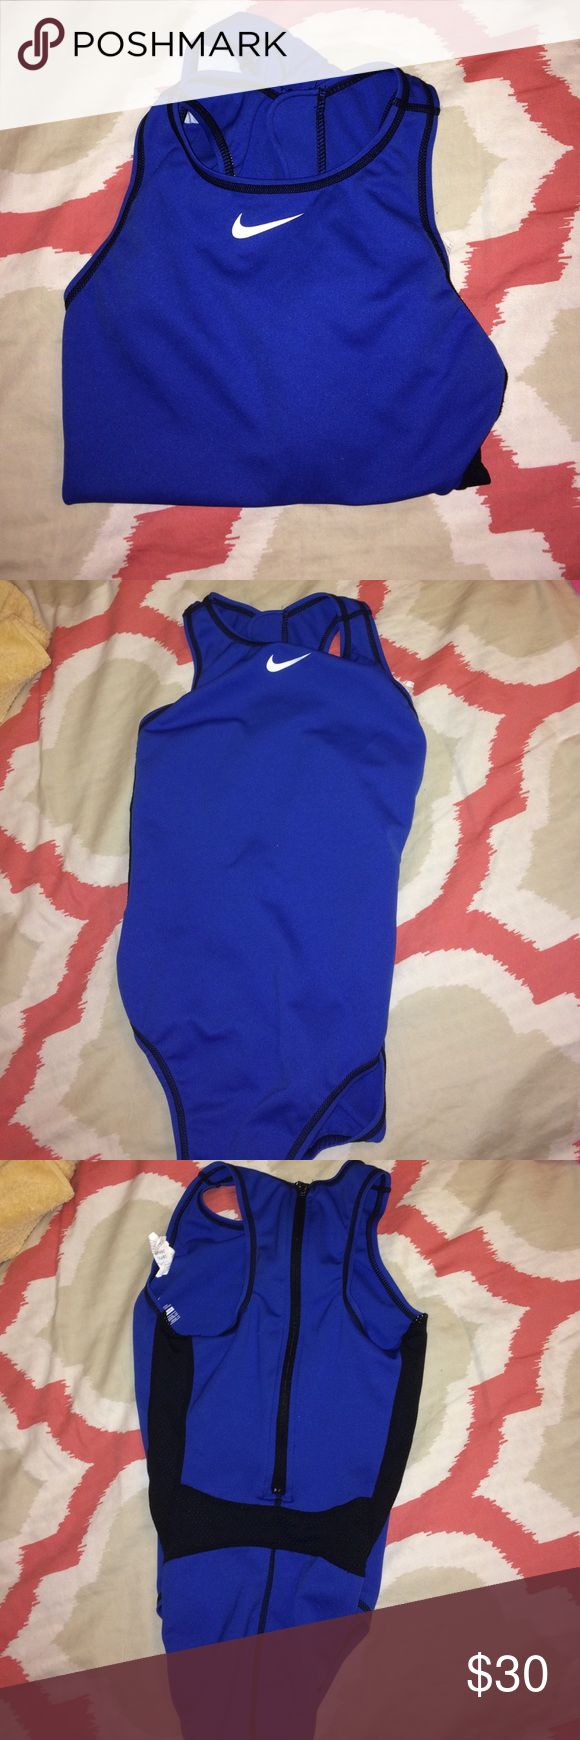 NIKE WATER POLO SUIT Royal blue water polo suit with zipper, mesh detailing, used few times 10/10 condition. PLEASE FEEL WELCOMED TO LEAVE AN OFFER ♡ Nike Swim One Pieces